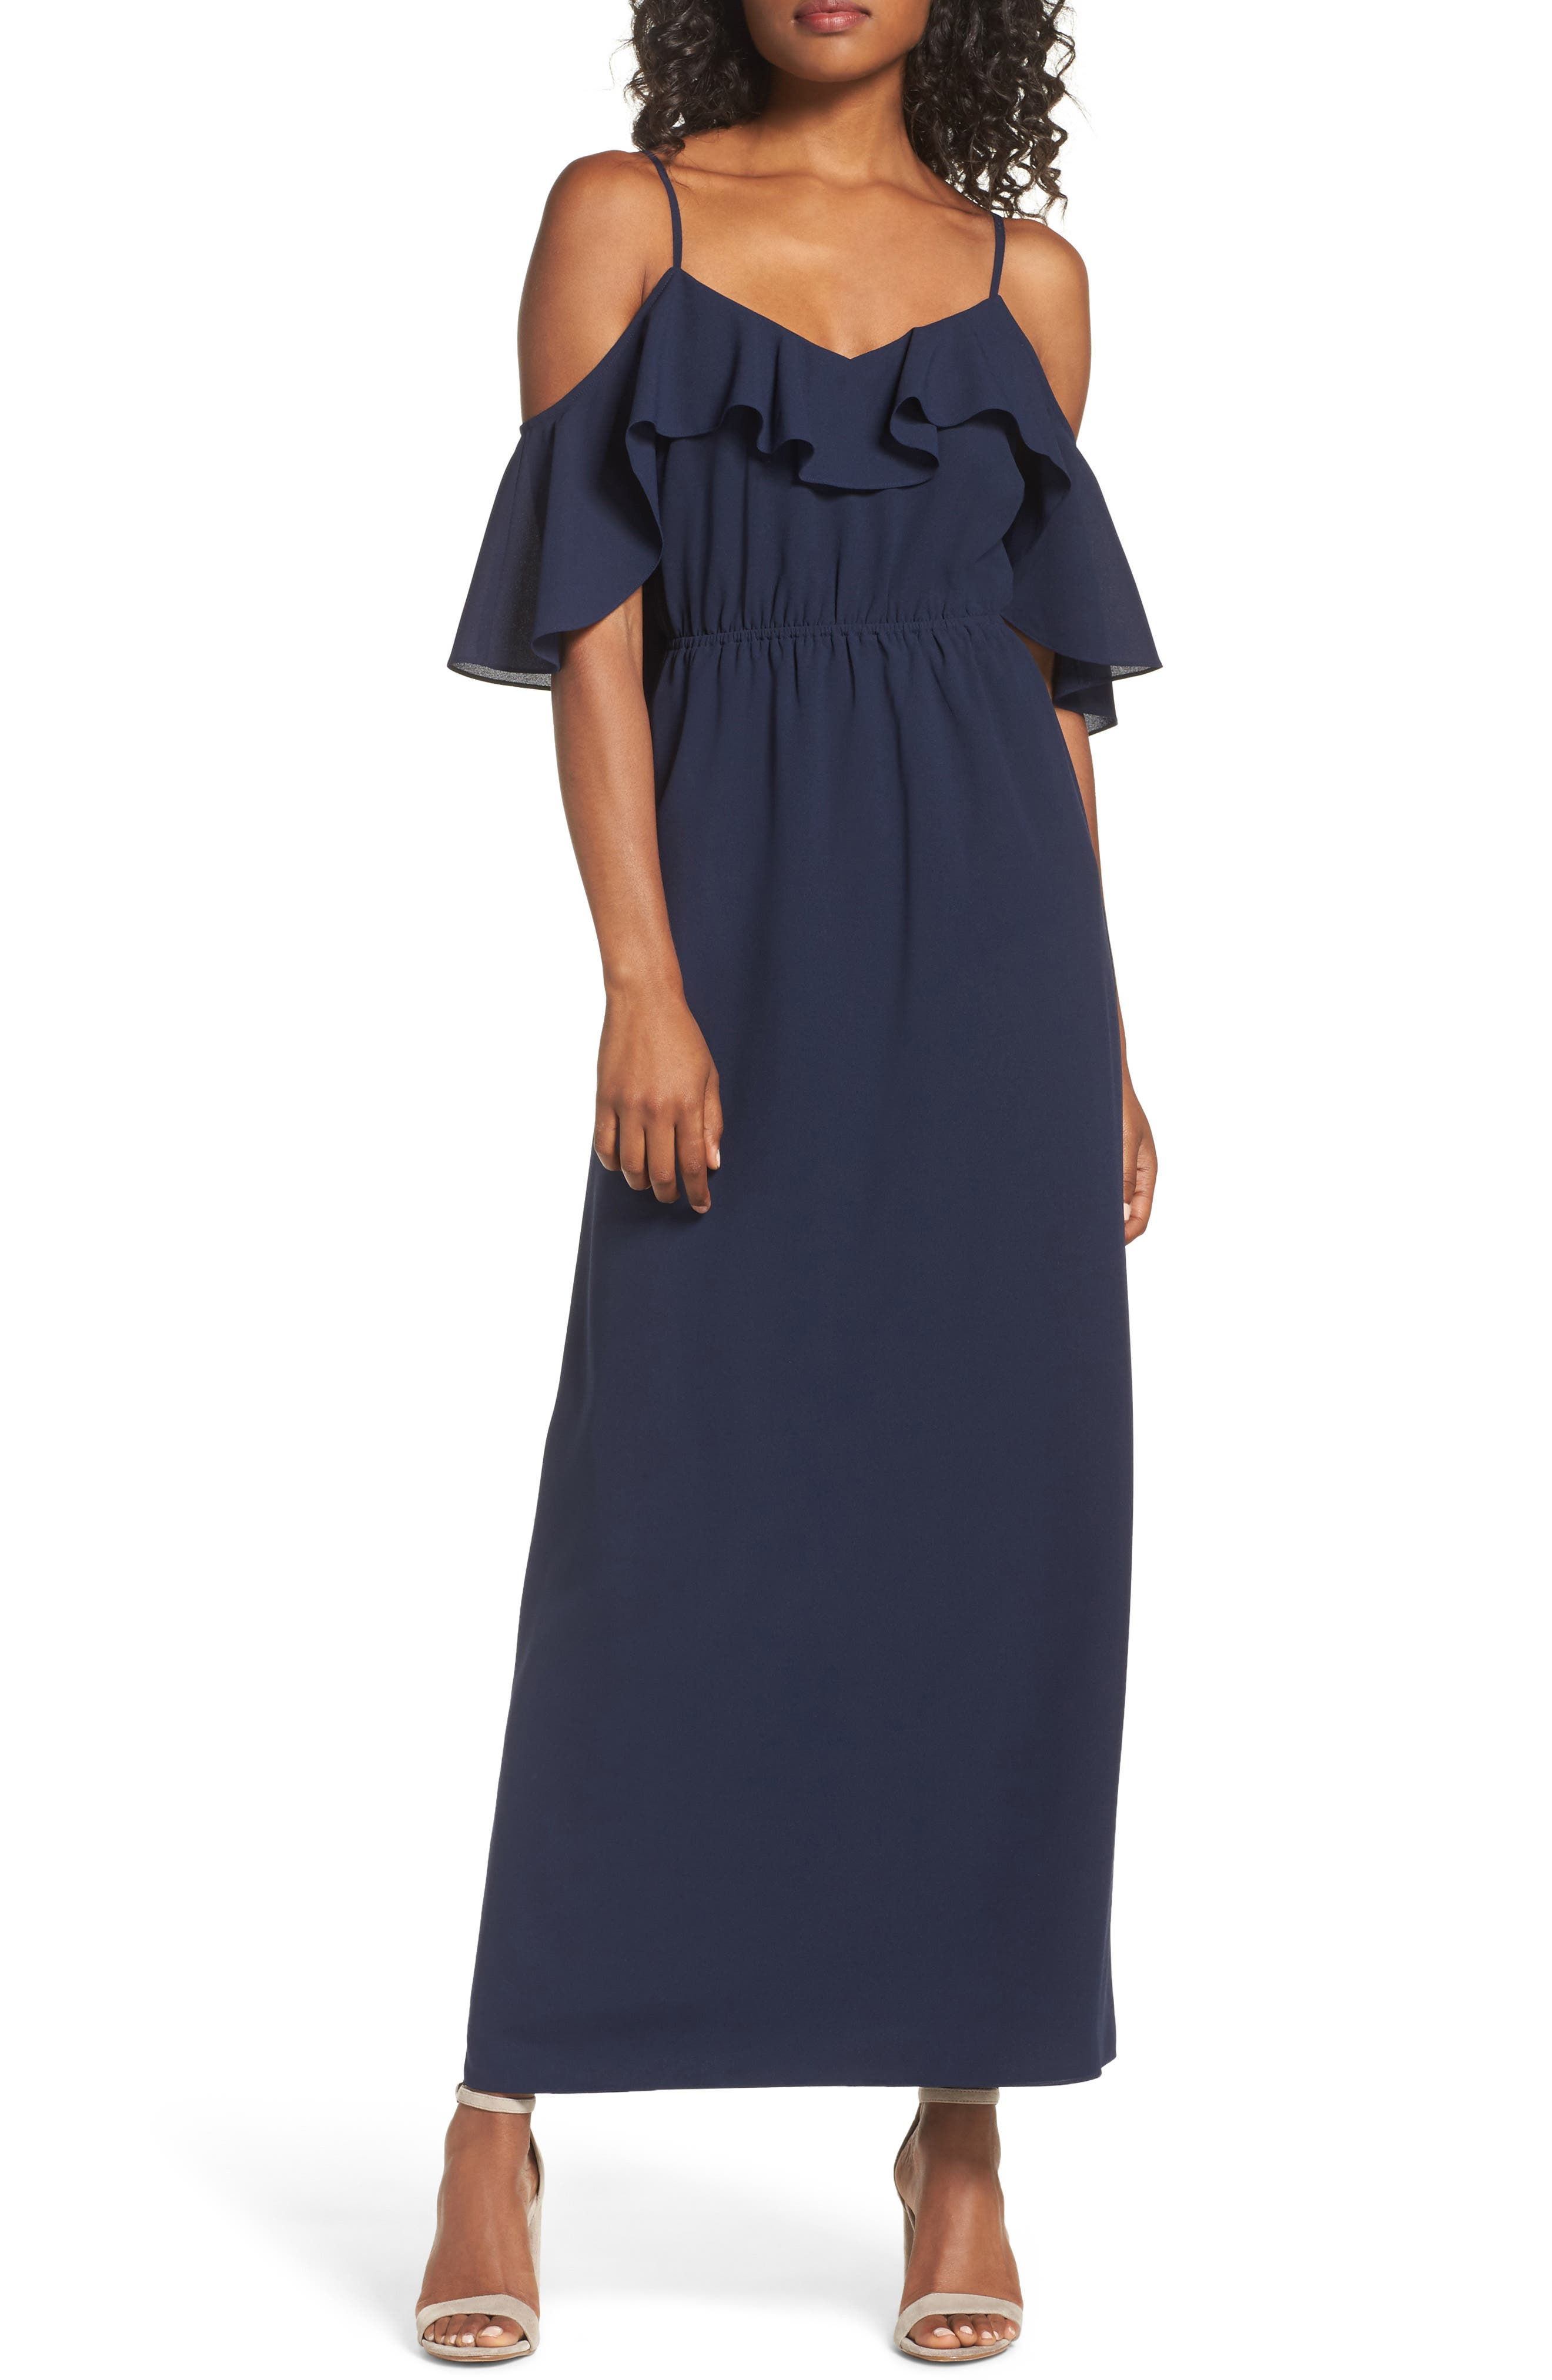 Ali & Jay Love Story Cold Shoulder Maxi Dress